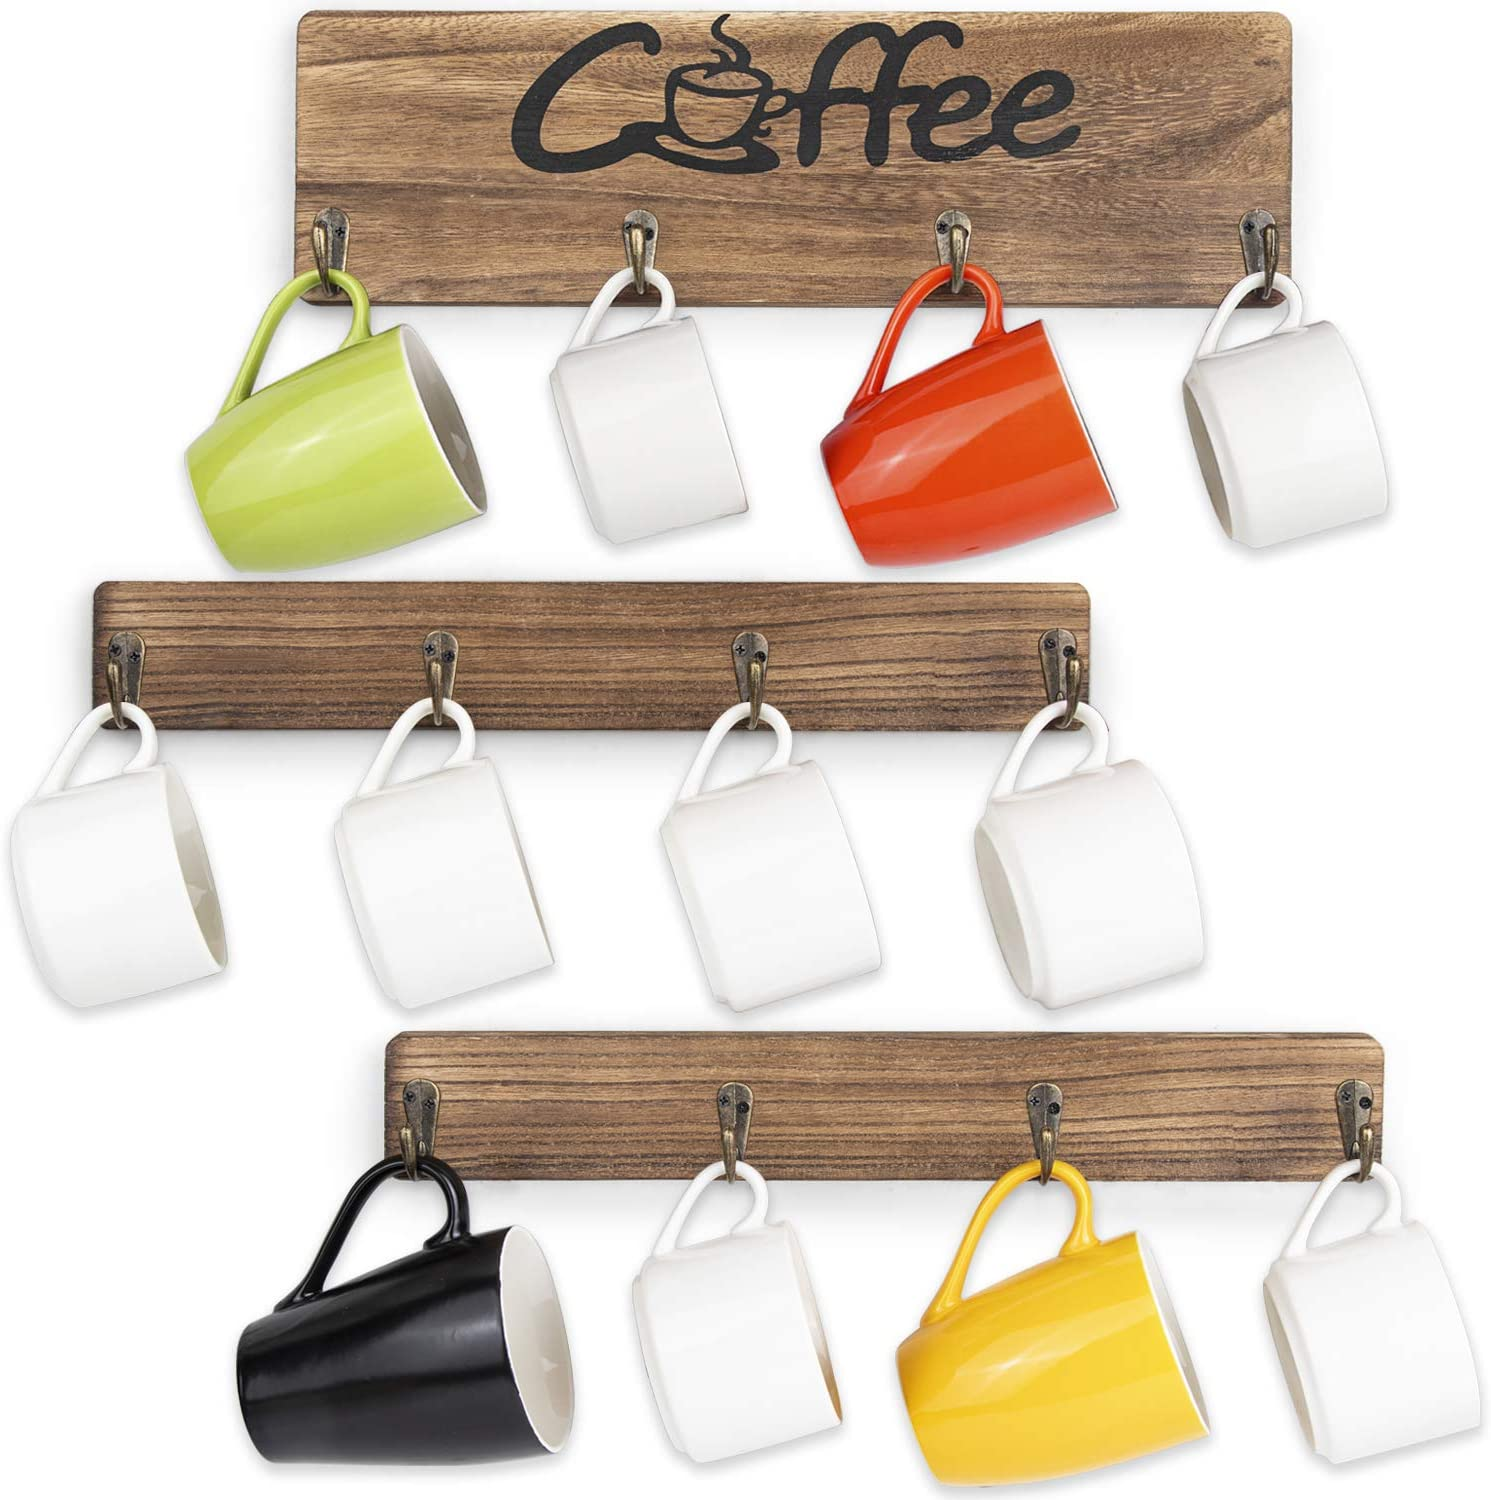 Amazon Com Olakee Coffee Mug Holder Rustic Mug Rack Wall Mounted With Coffee Sign 12 Coffee Cup Hangers For Kitchen Organizer Coffee Nook Decor Carbonized Black Home Improvement